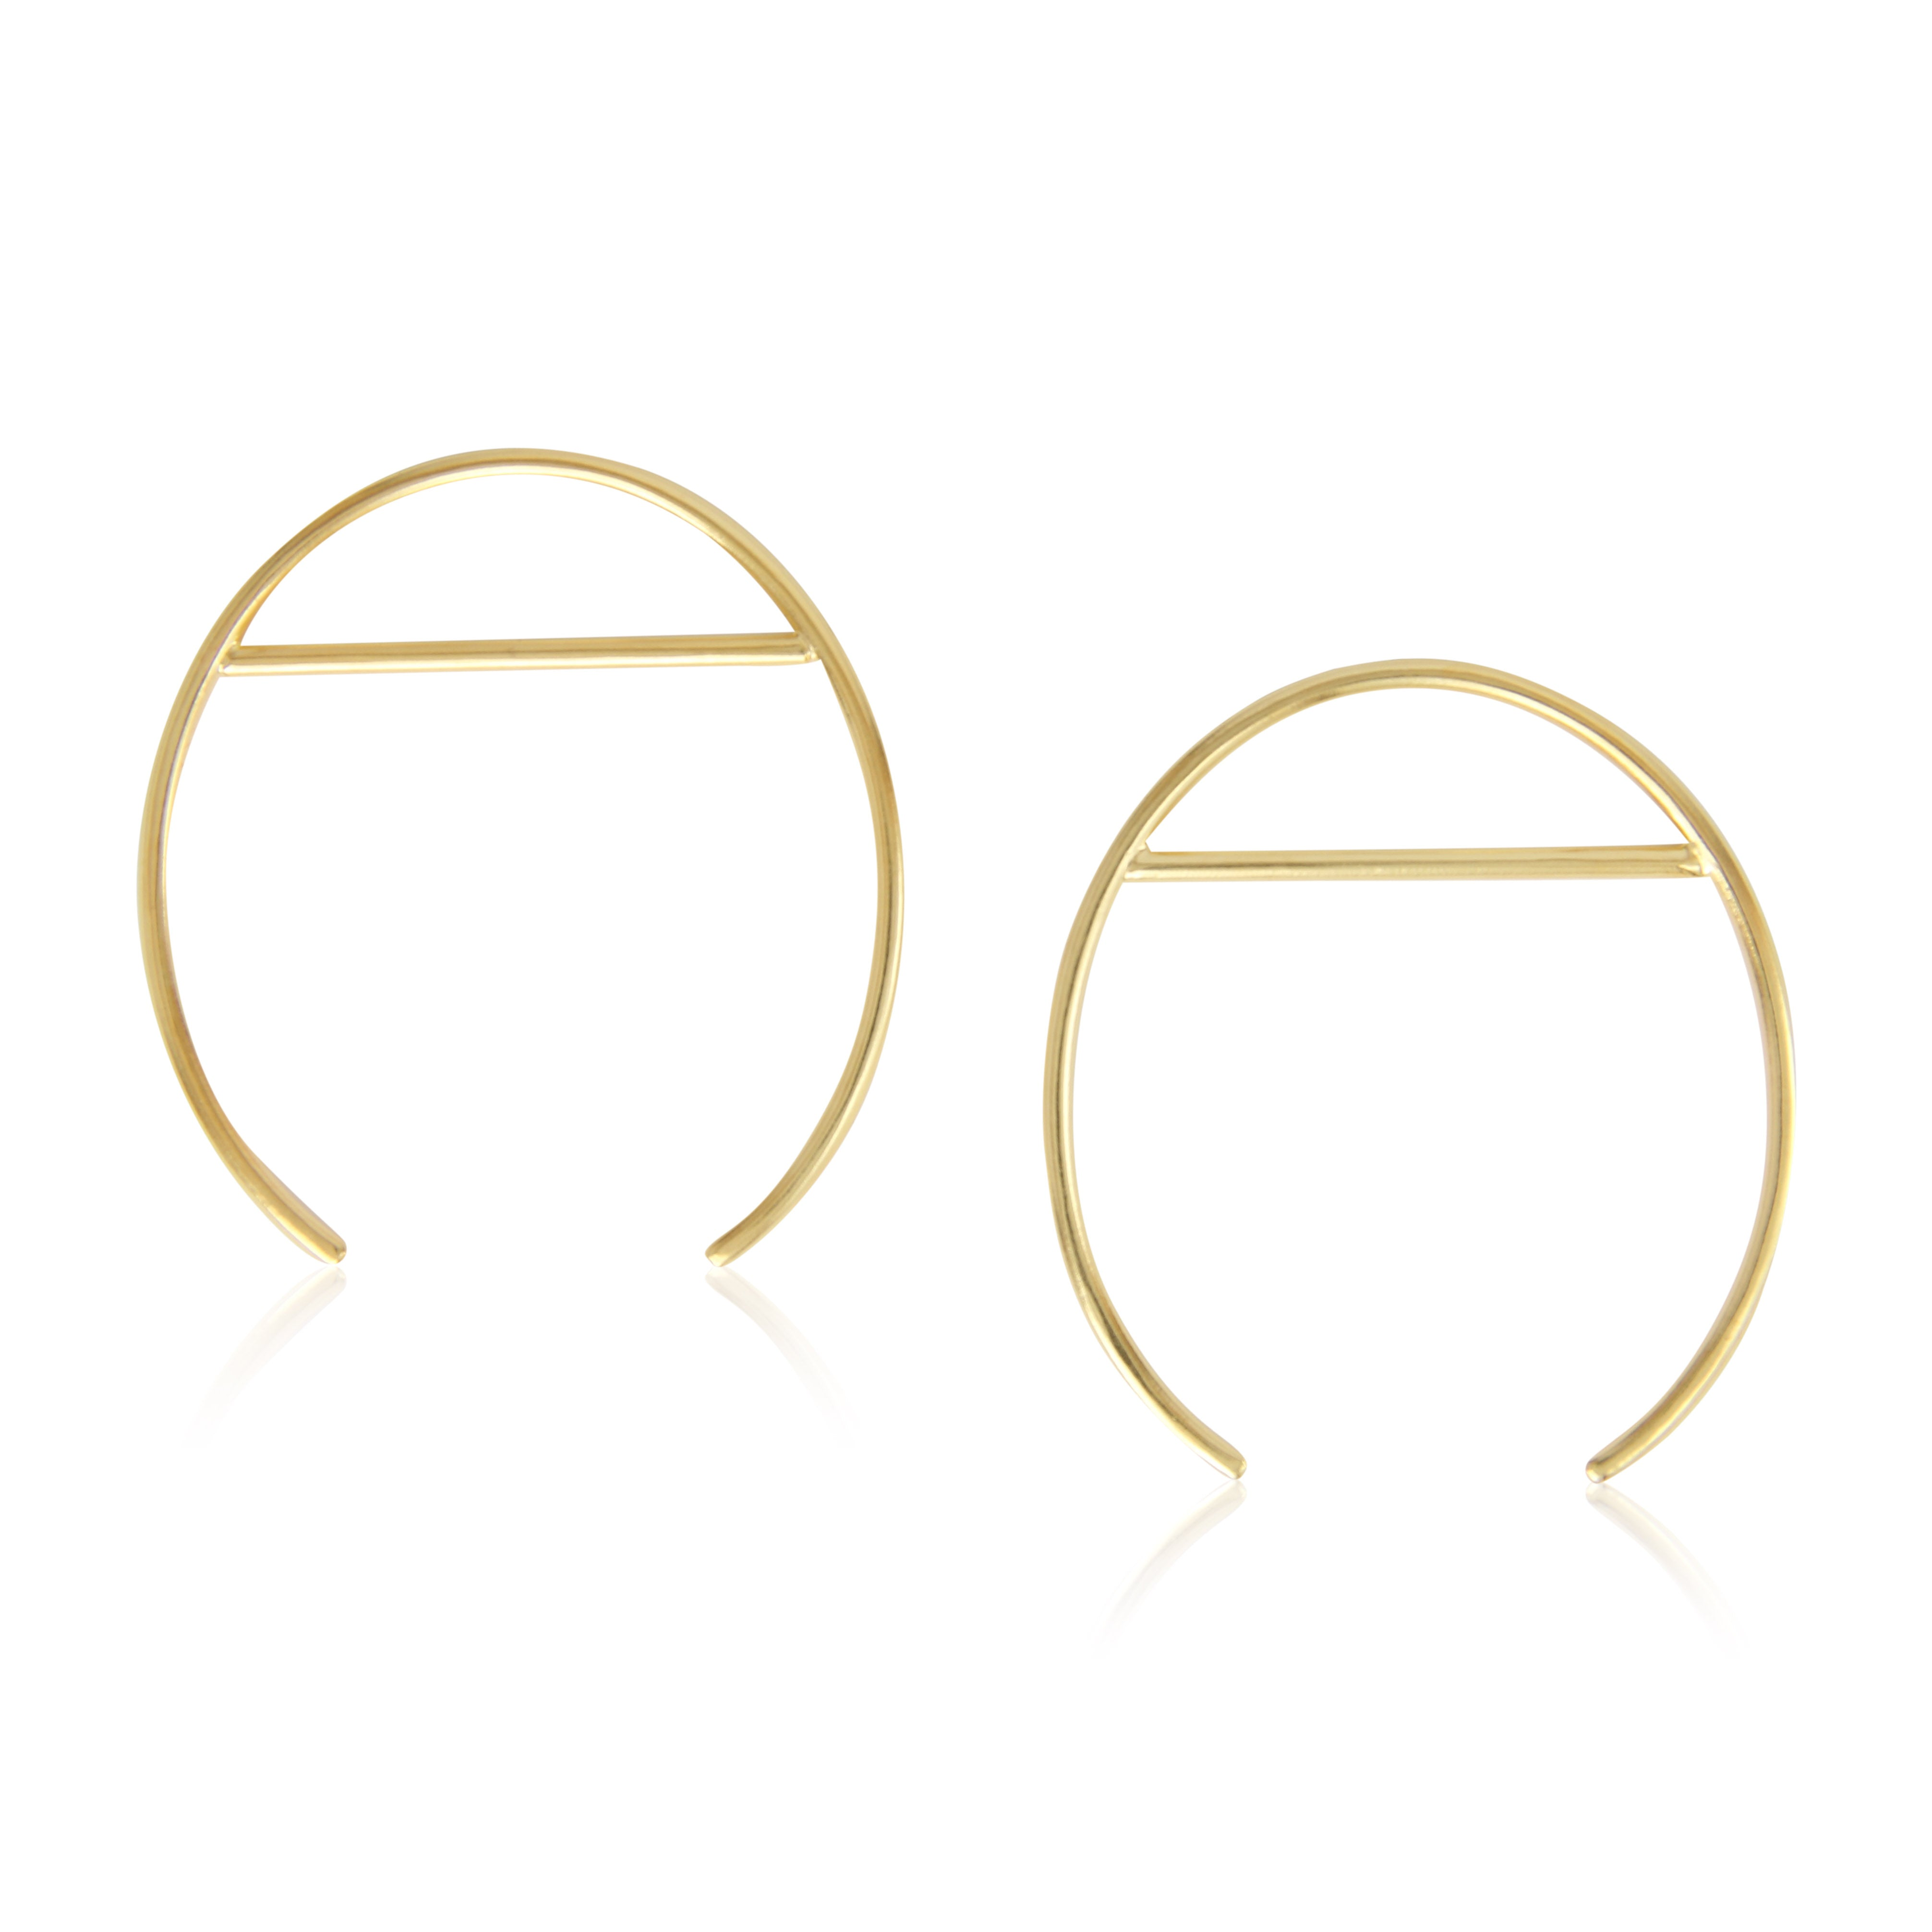 24K Gold Plated Sterling Silver Open Oval & Line Statement Earrings